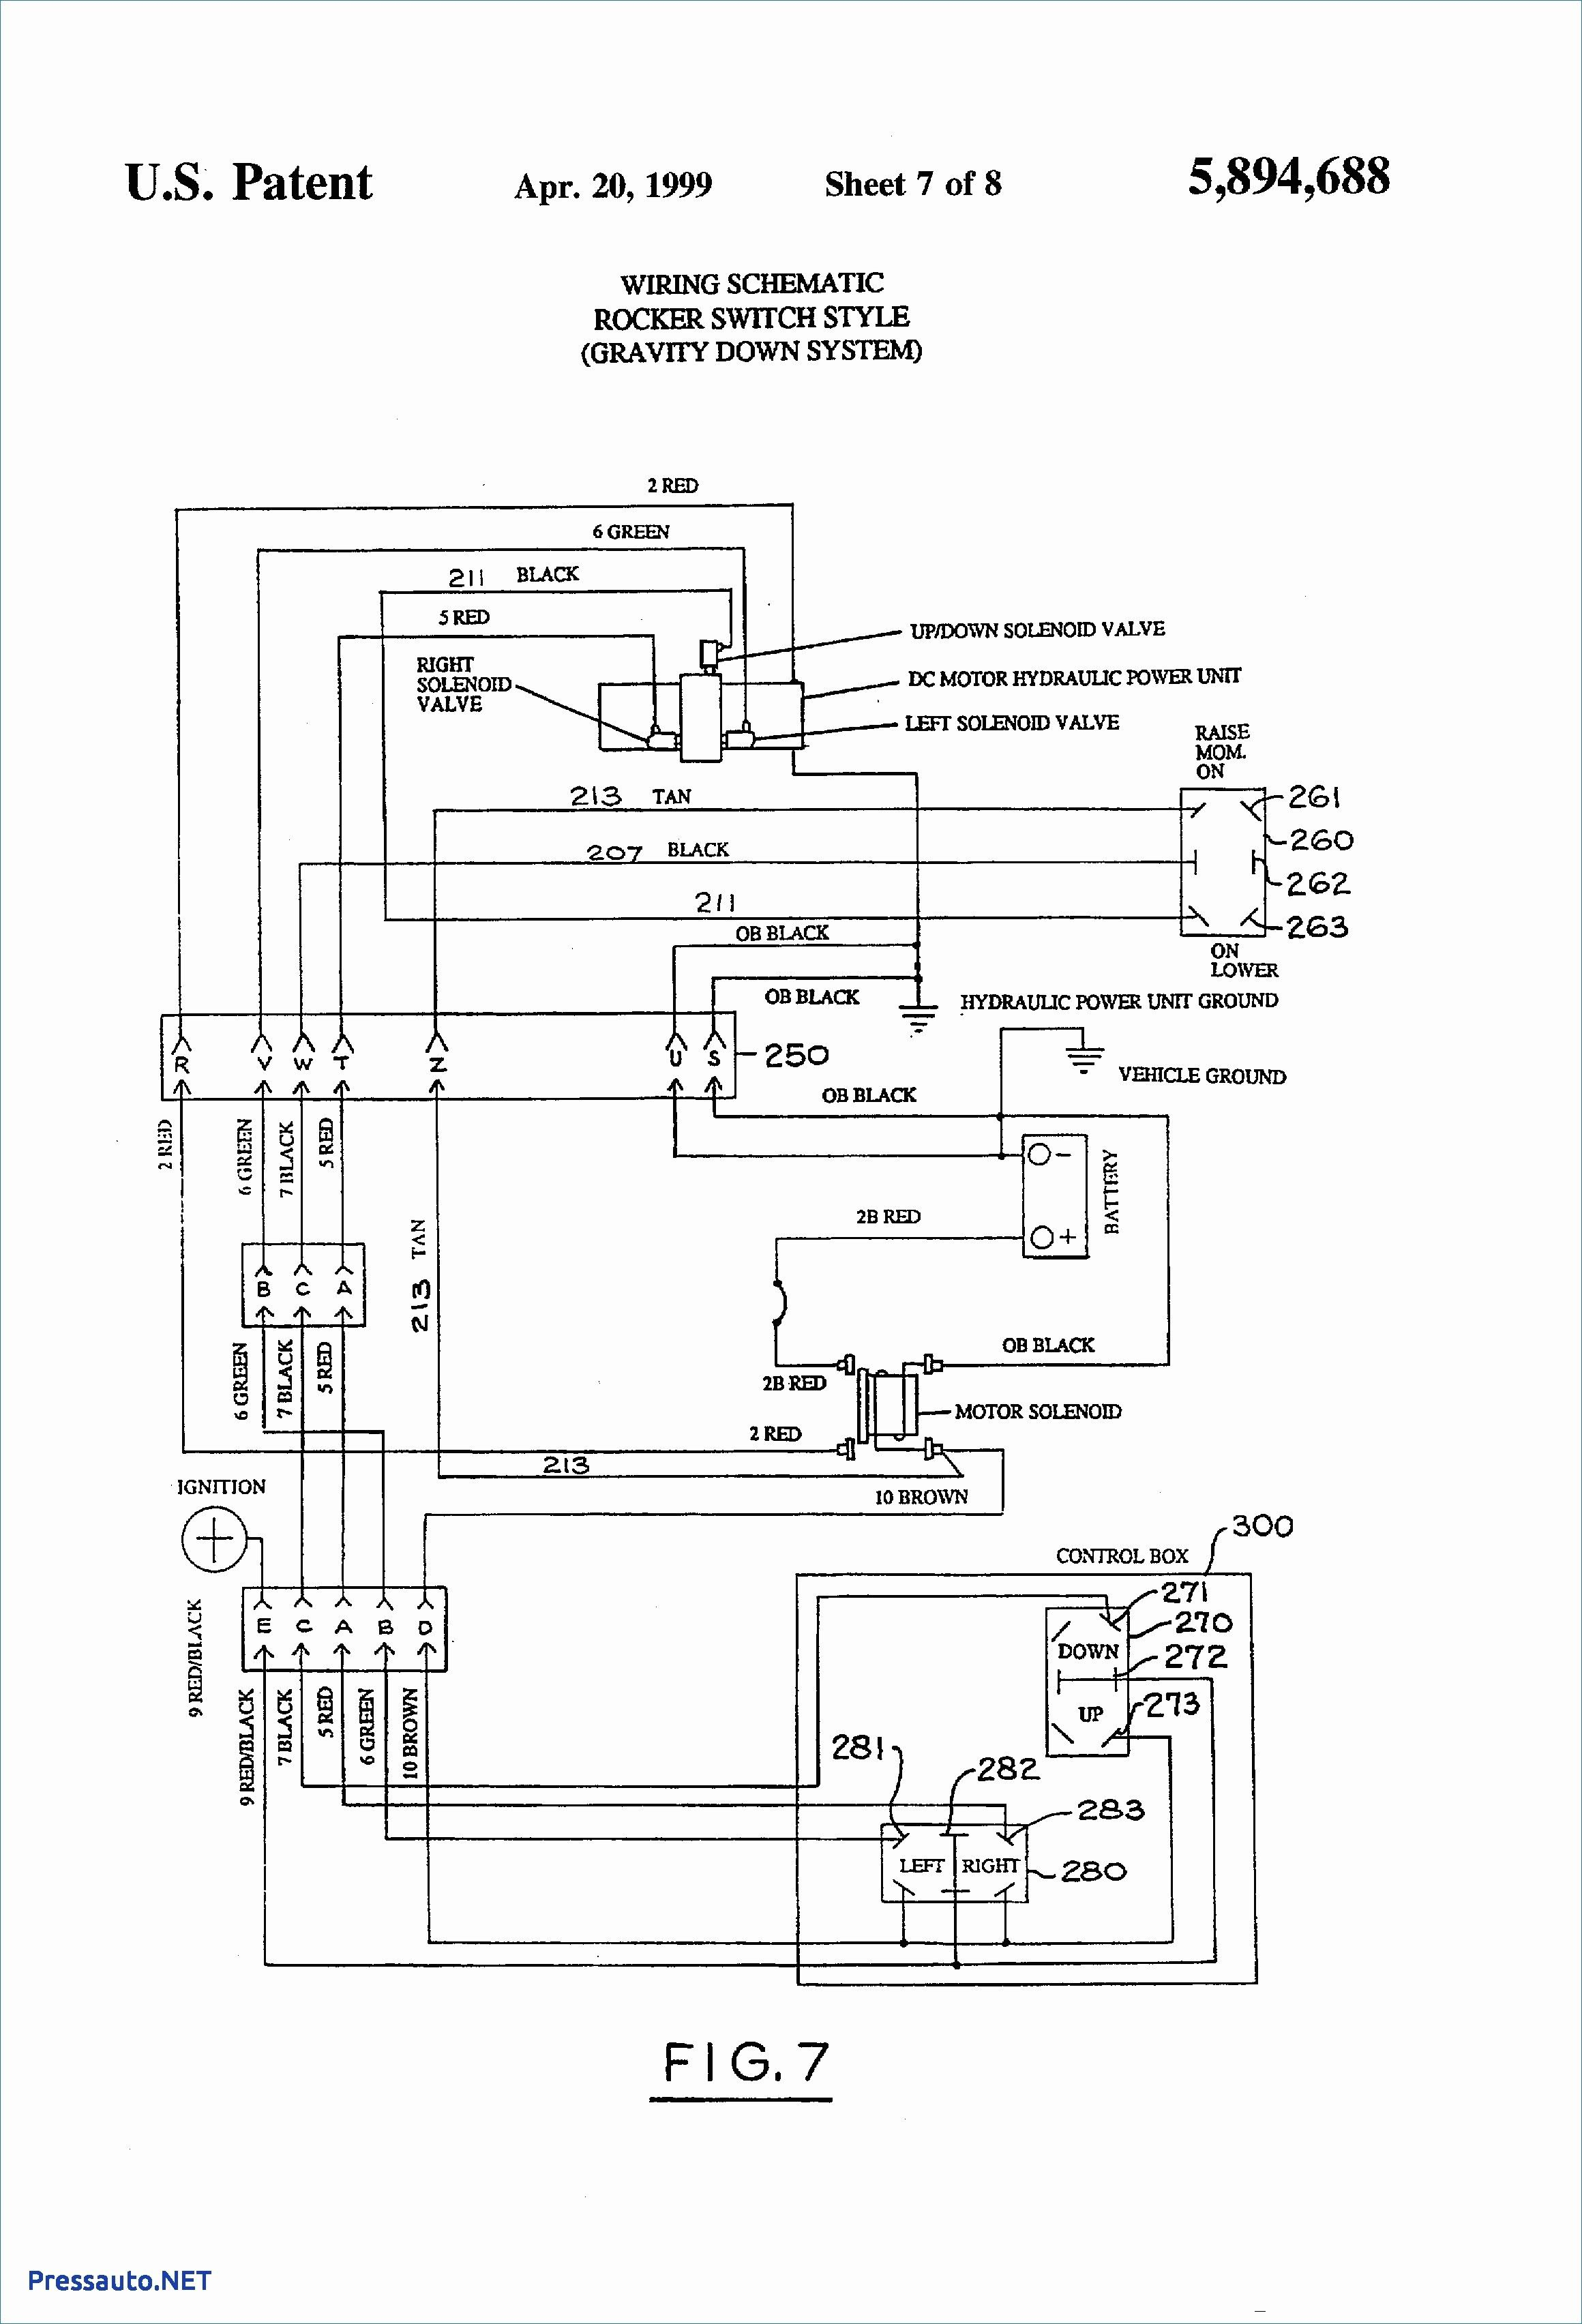 Wiring Diagram For Western Unimount